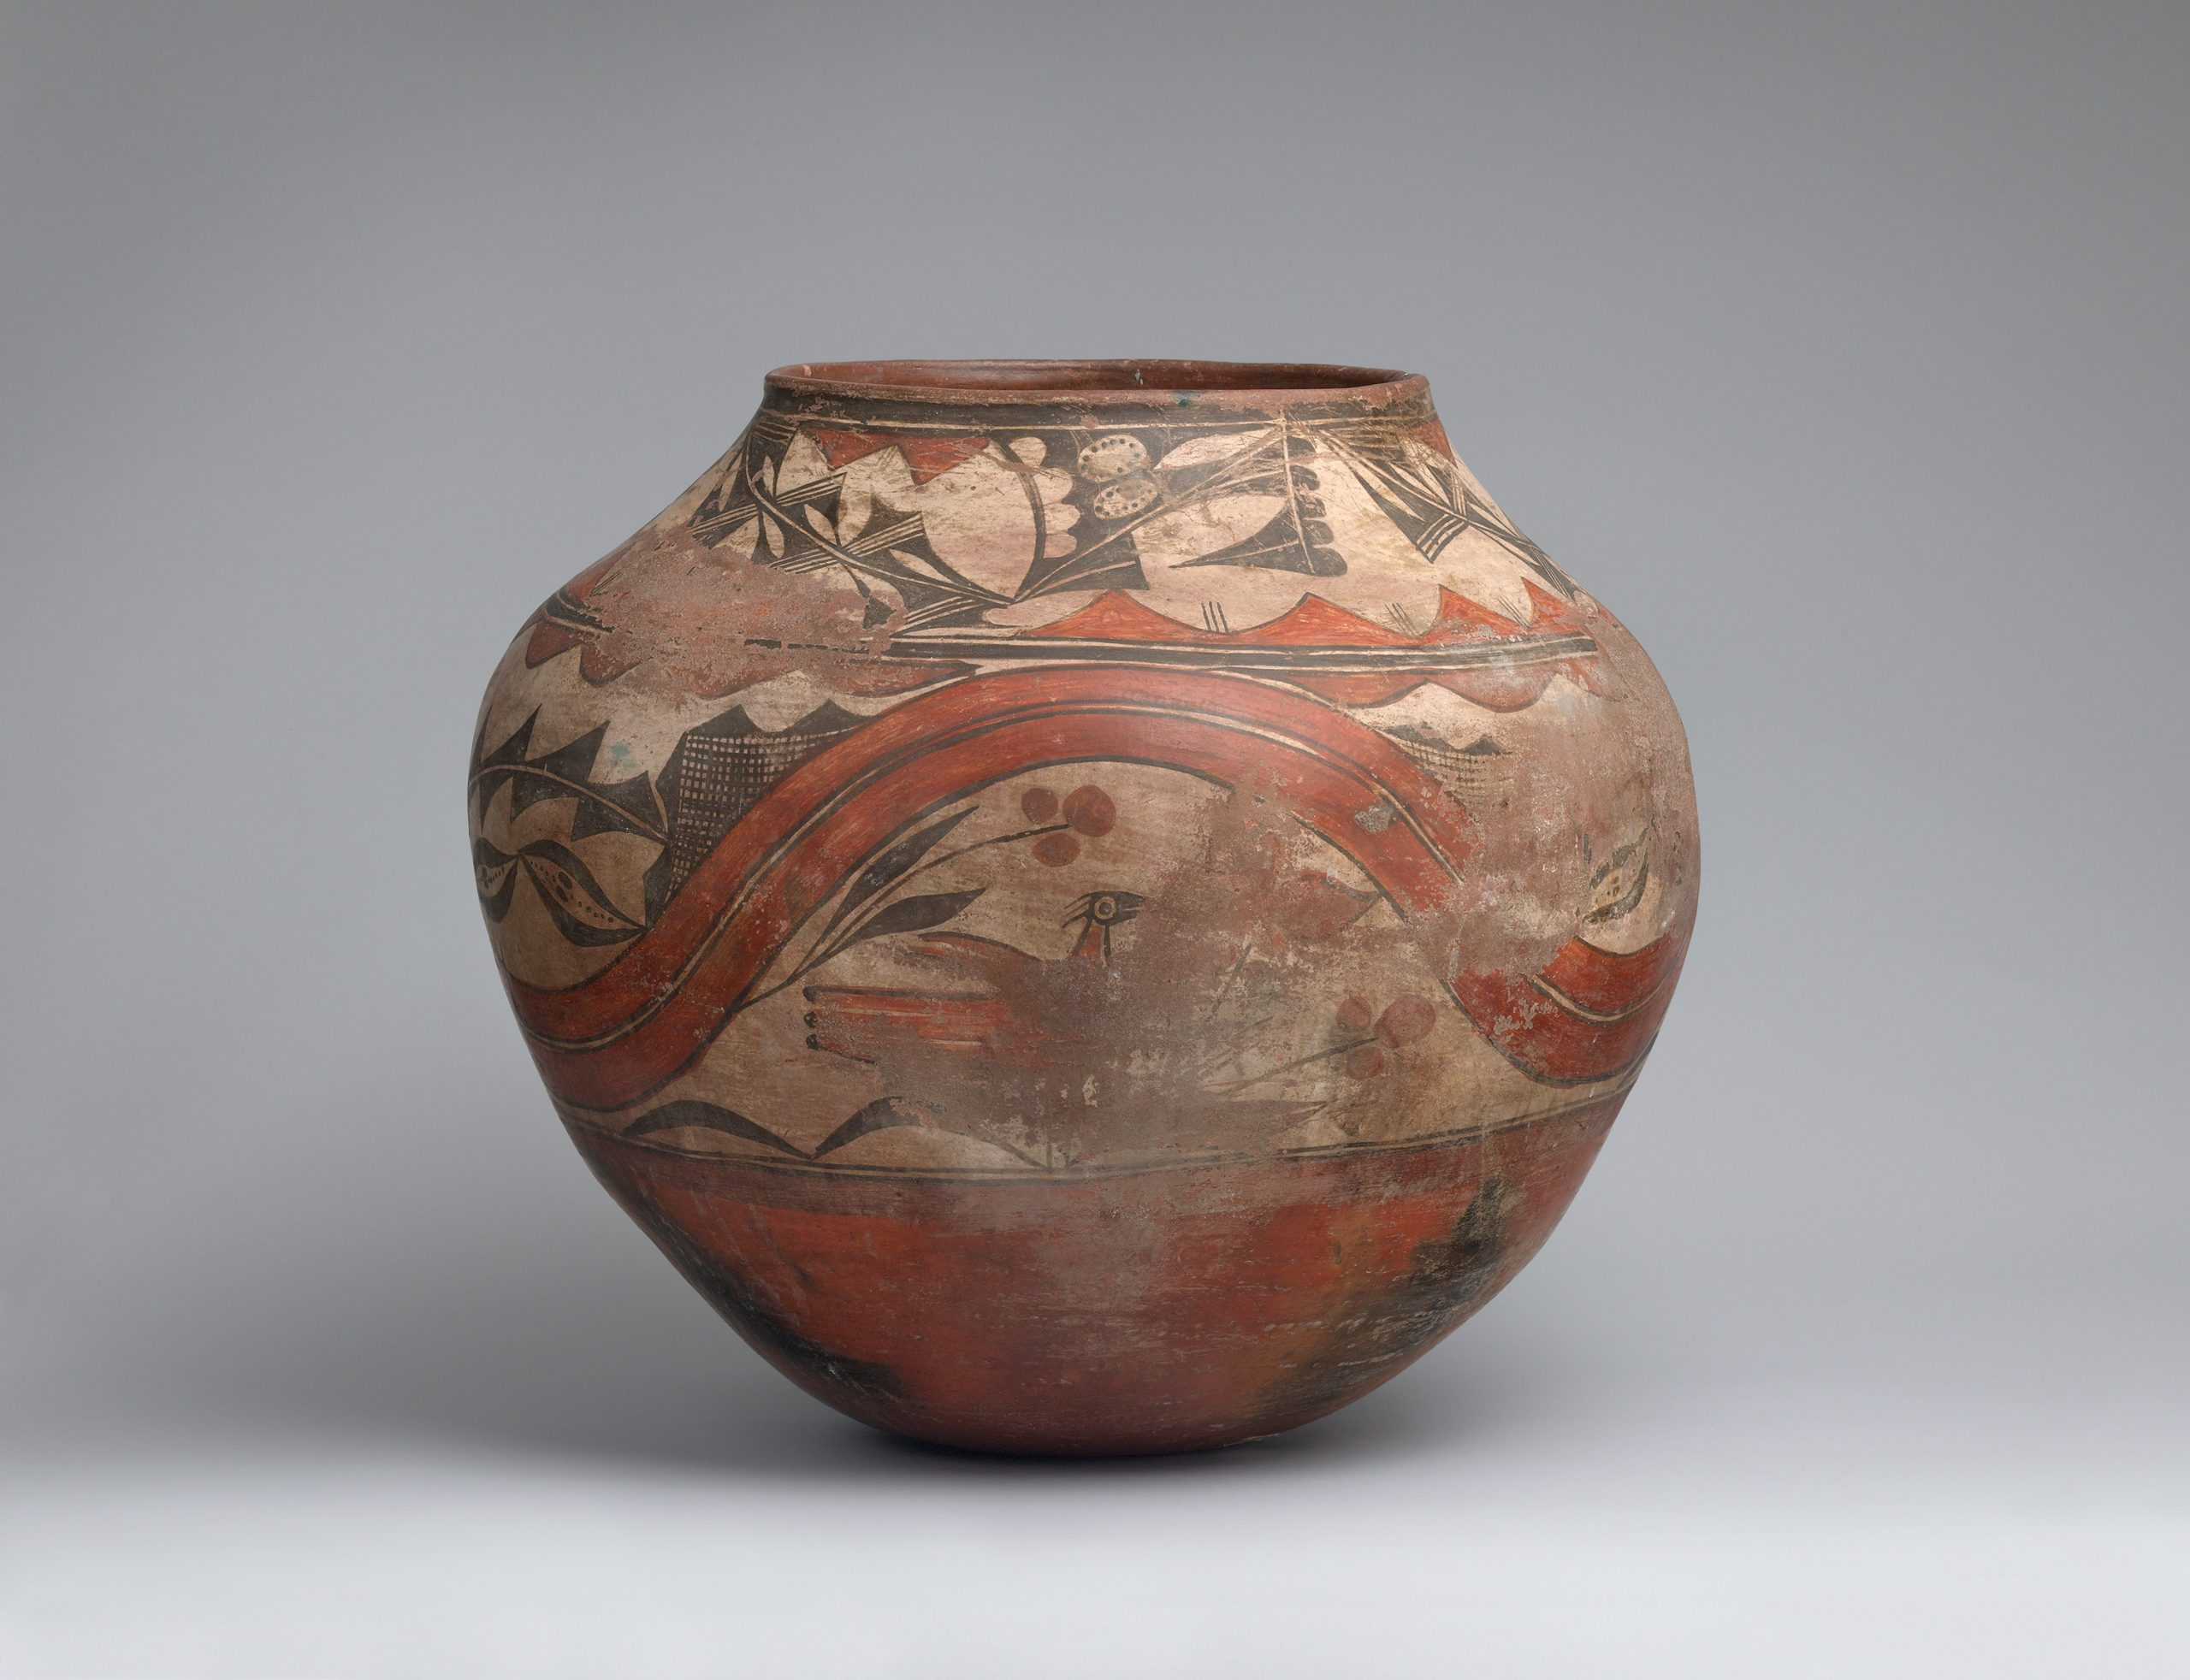 A Zia jar decorated with two bands of designs, including birds, flowers, plants, and geometric shapes.